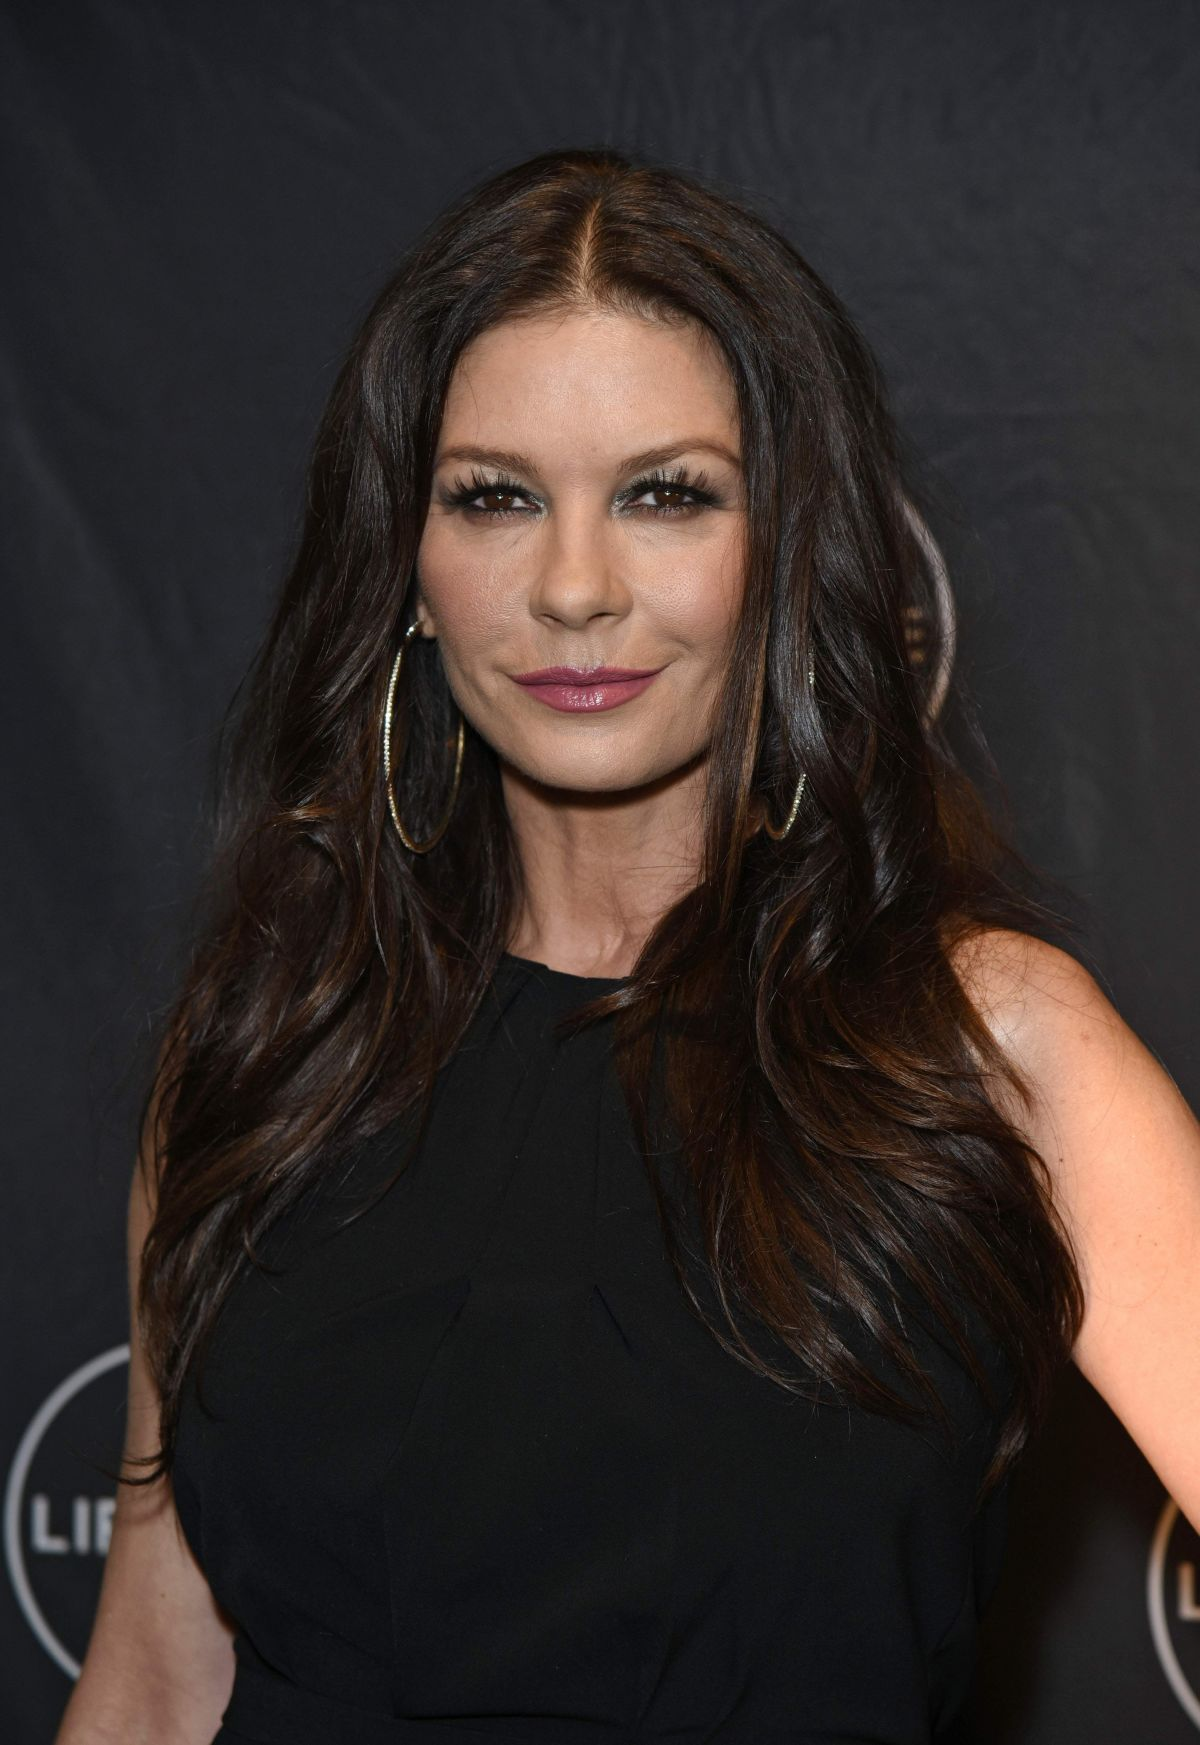 Catherine Zeta-Jones At NY Premiere of Cocaine Godmother ... Catherine Zeta Jones